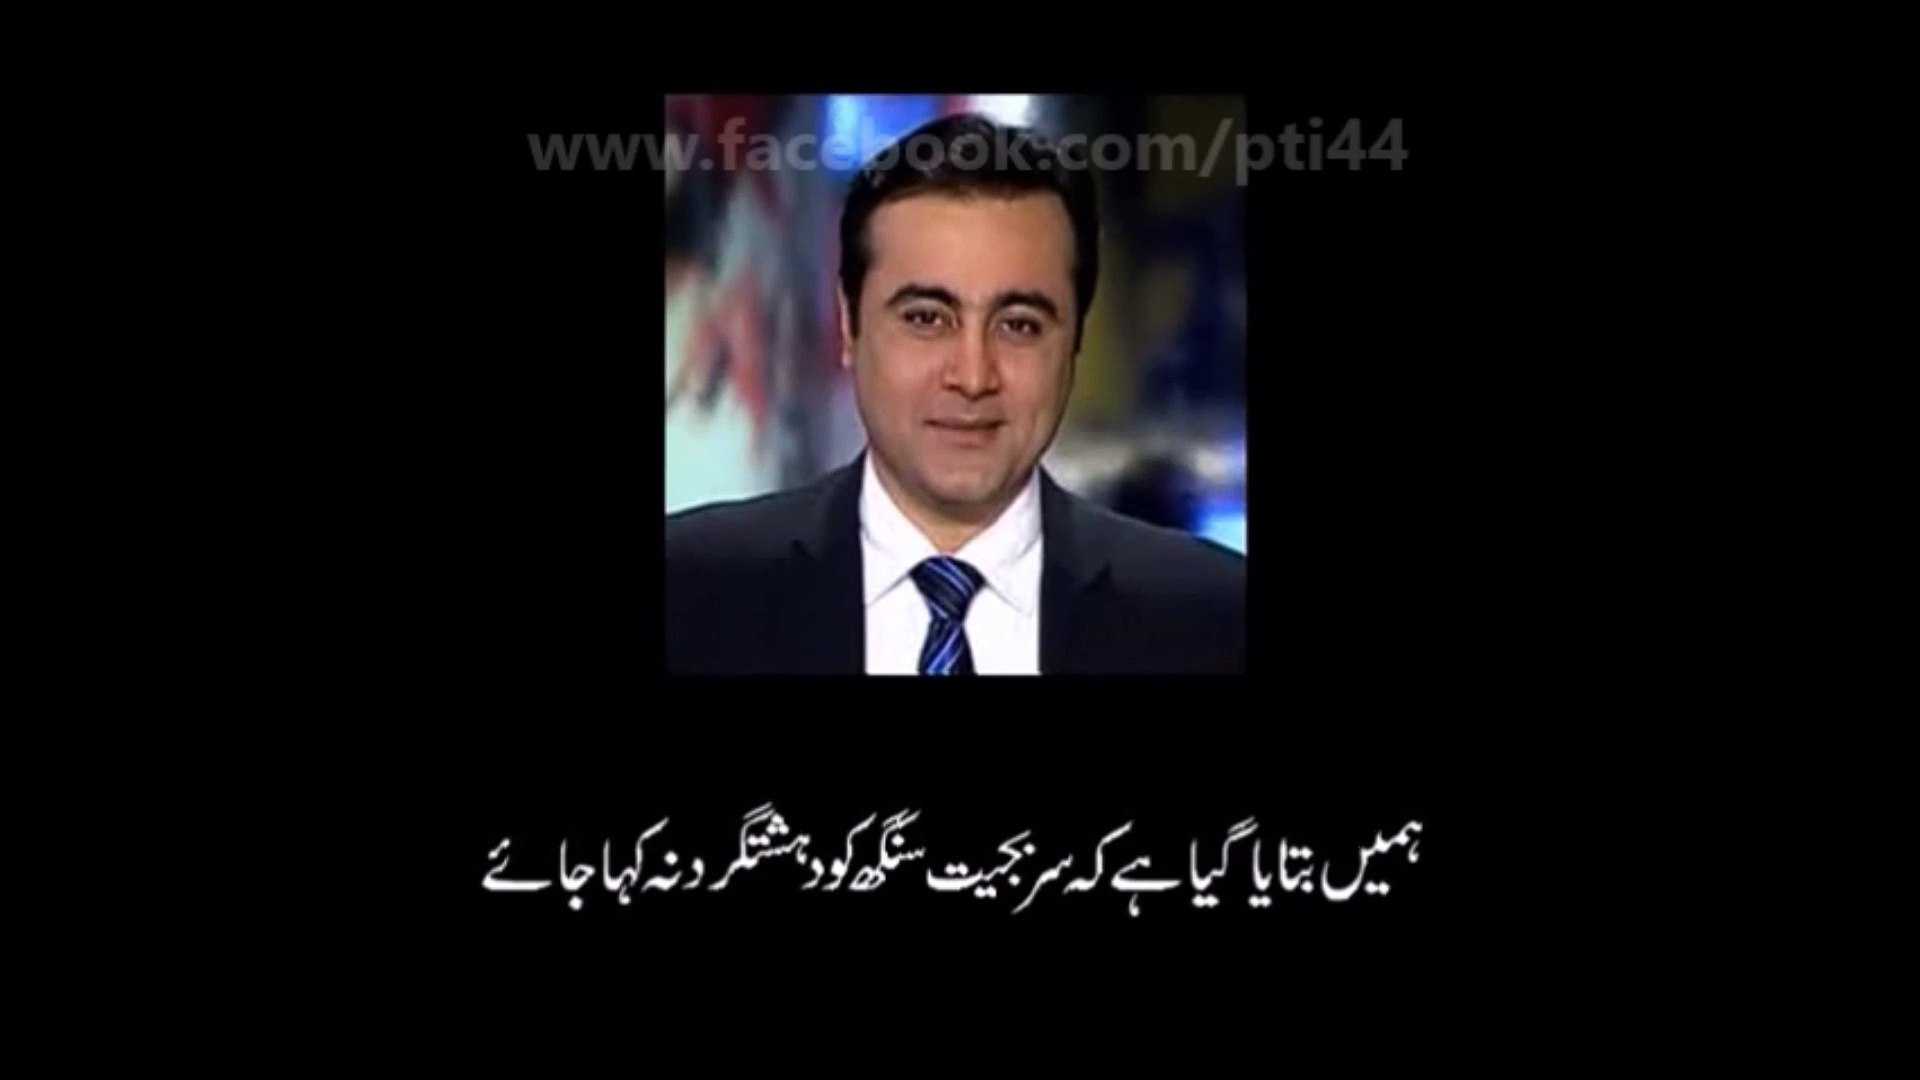 Geo News Anchor Mansoor Ali Khan ex-pos-ed Geo News in a BBC interview